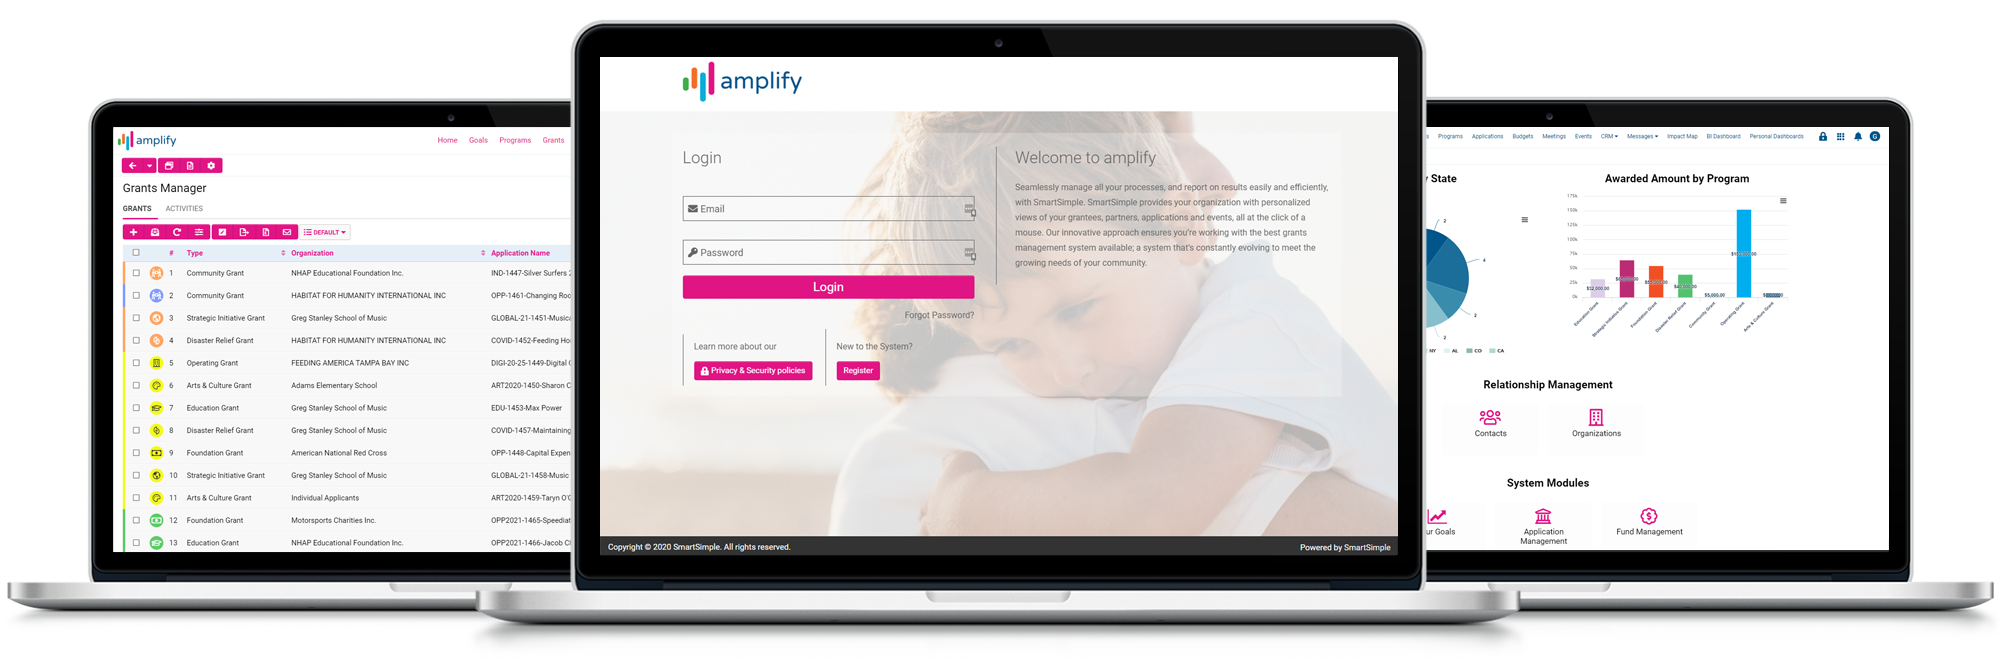 SmartSimple Amplify for Grants Management